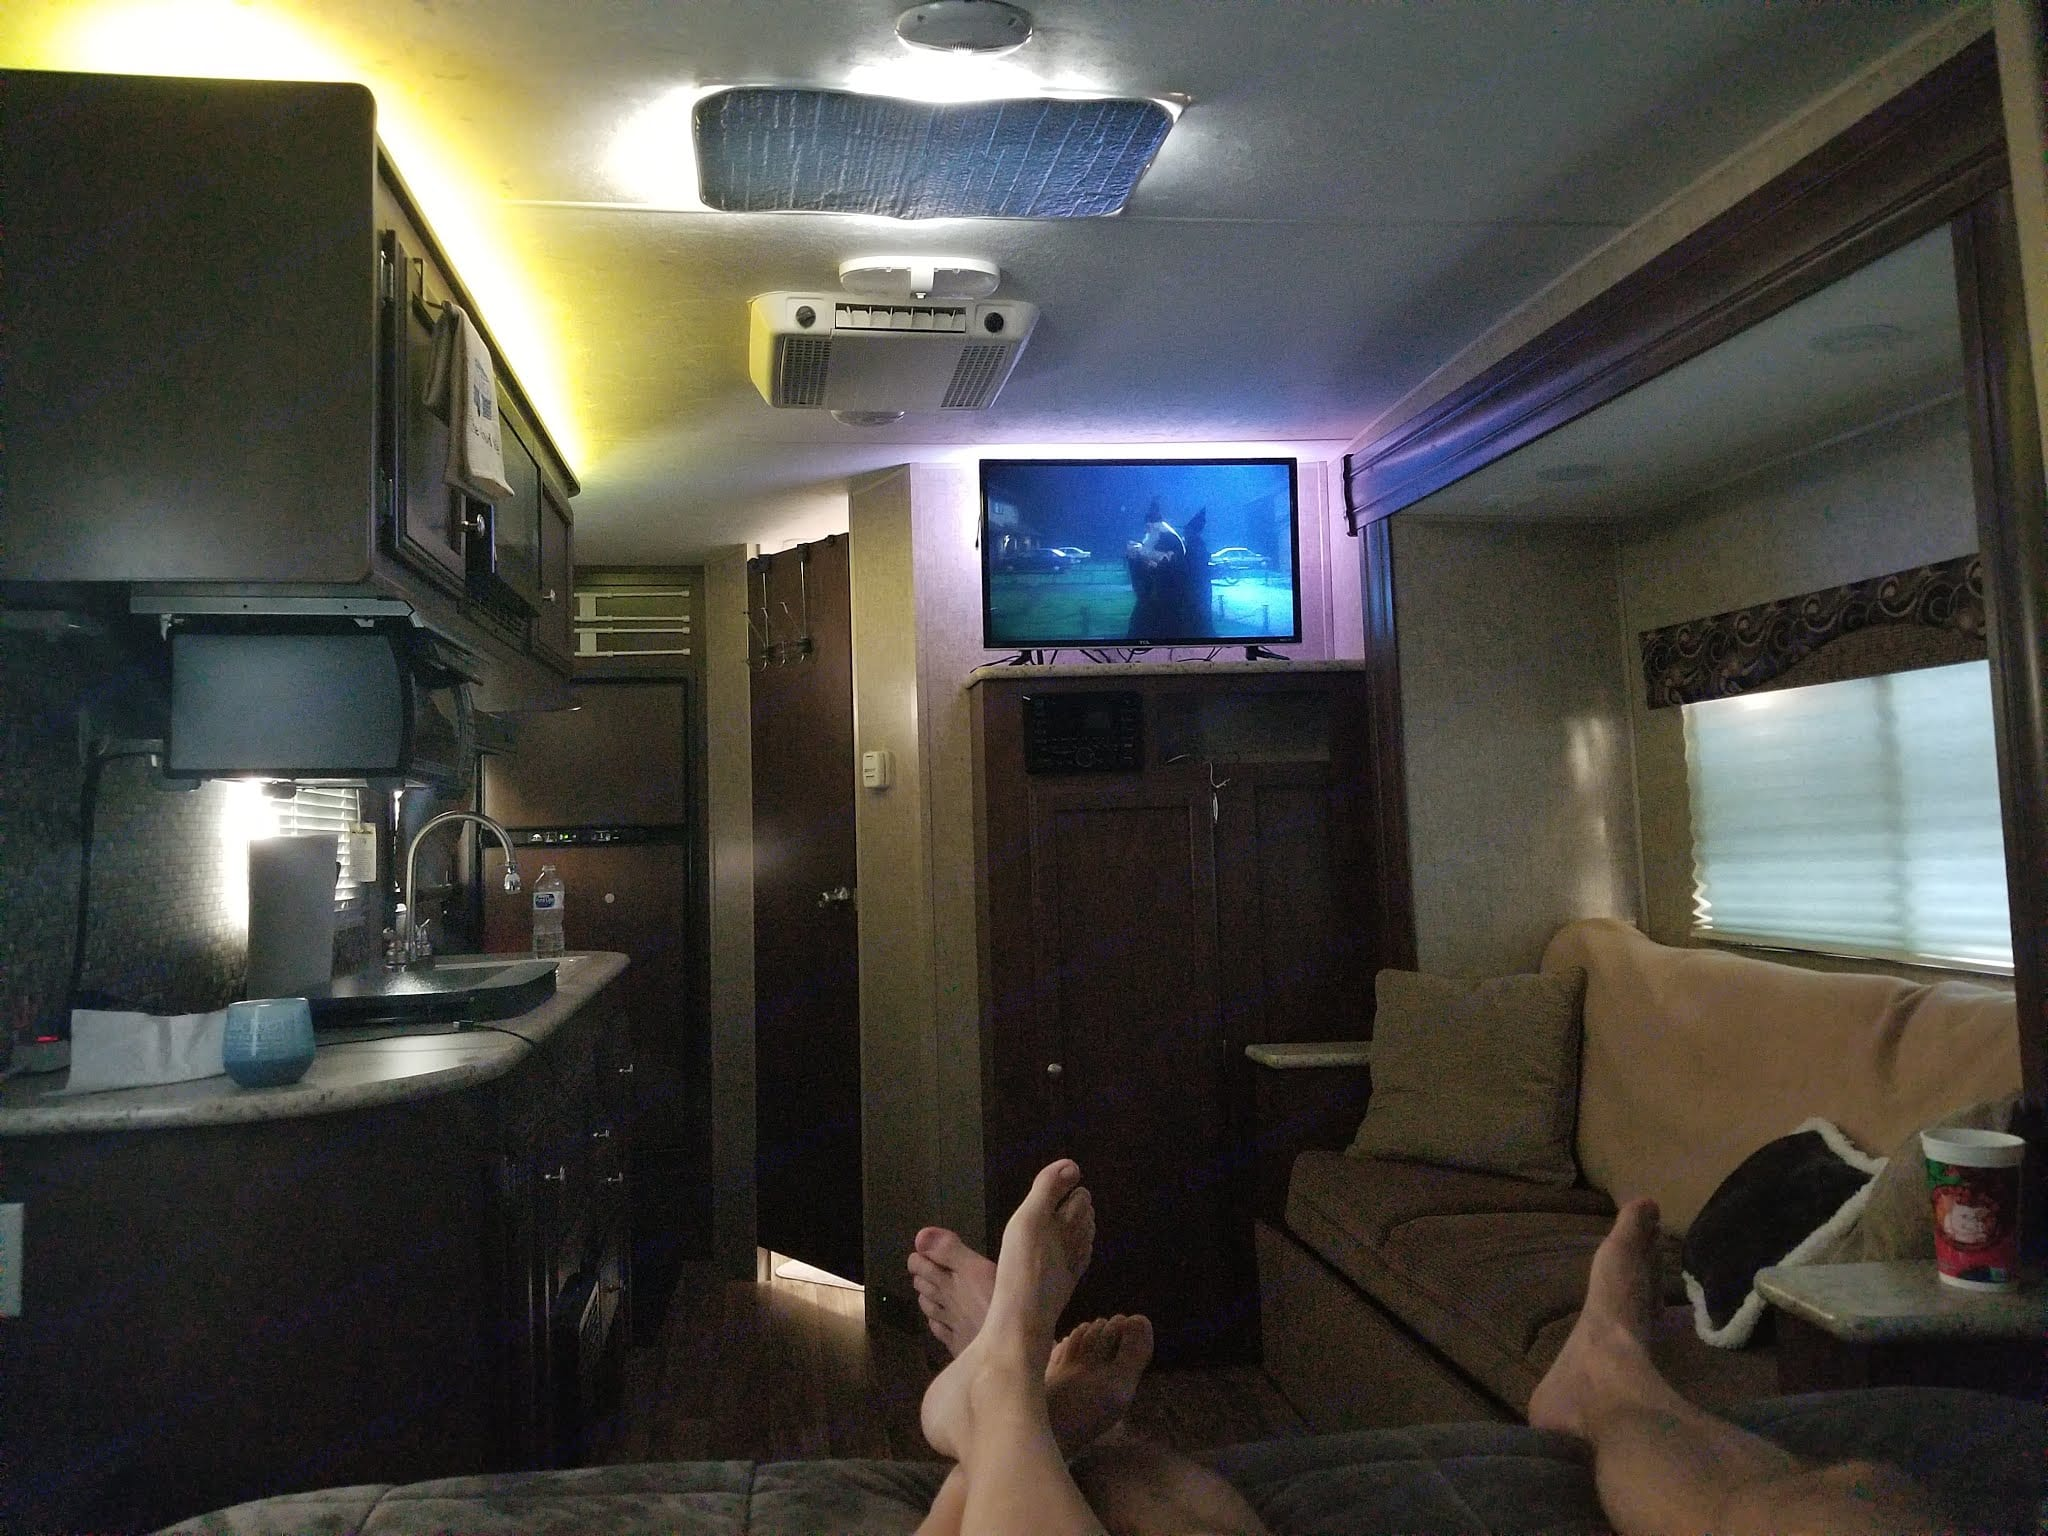 The best hangout spot! Watching netflix on the bed (perfect for rainy days when camping). Venture Rv Sonic 2015